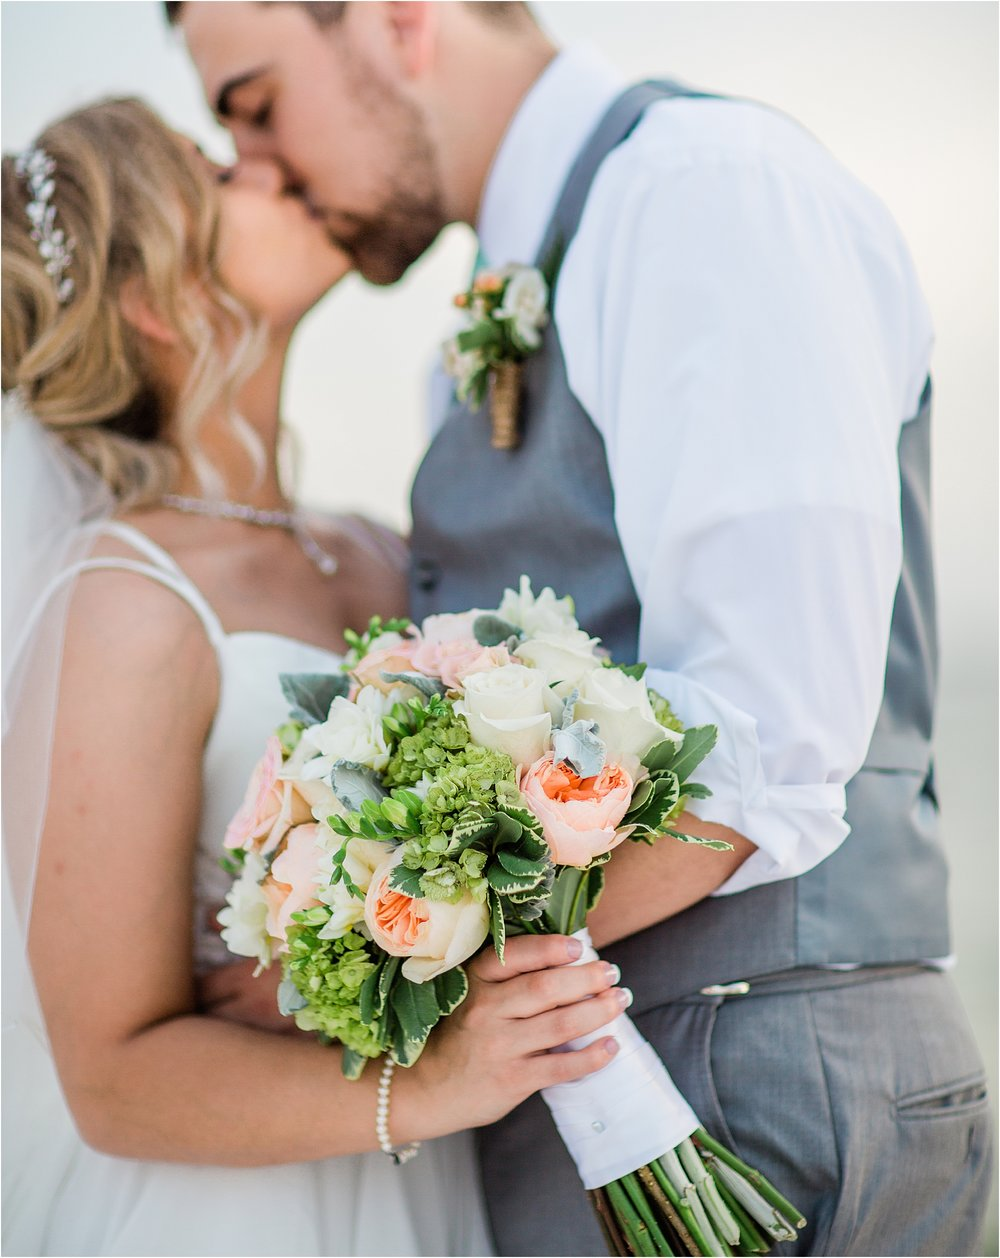 Wedding Florist in Gulf Shores, Alabama